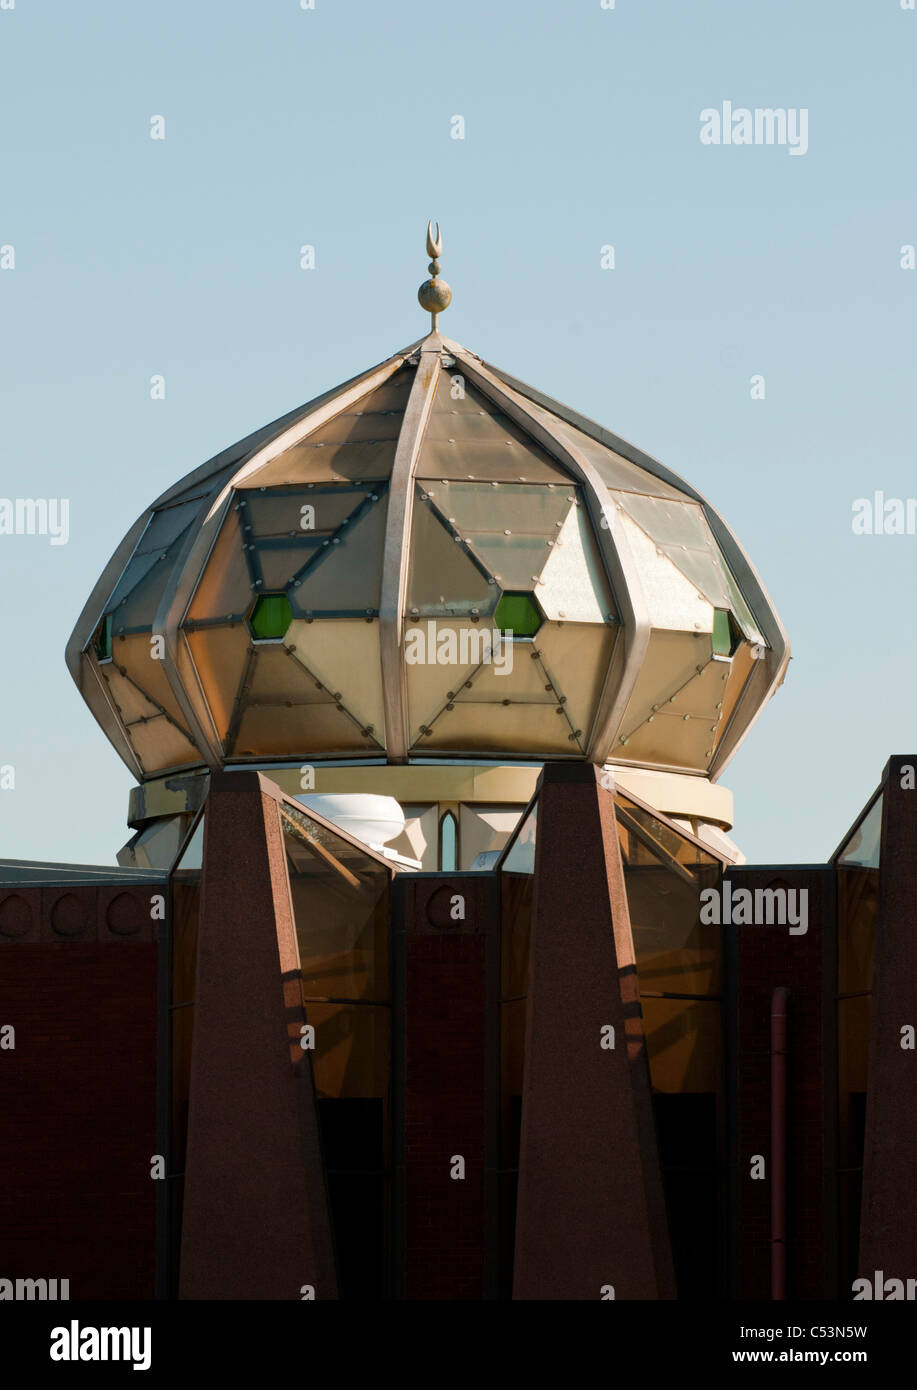 The Dome of the Central Mosque Glasgow. - Stock Image